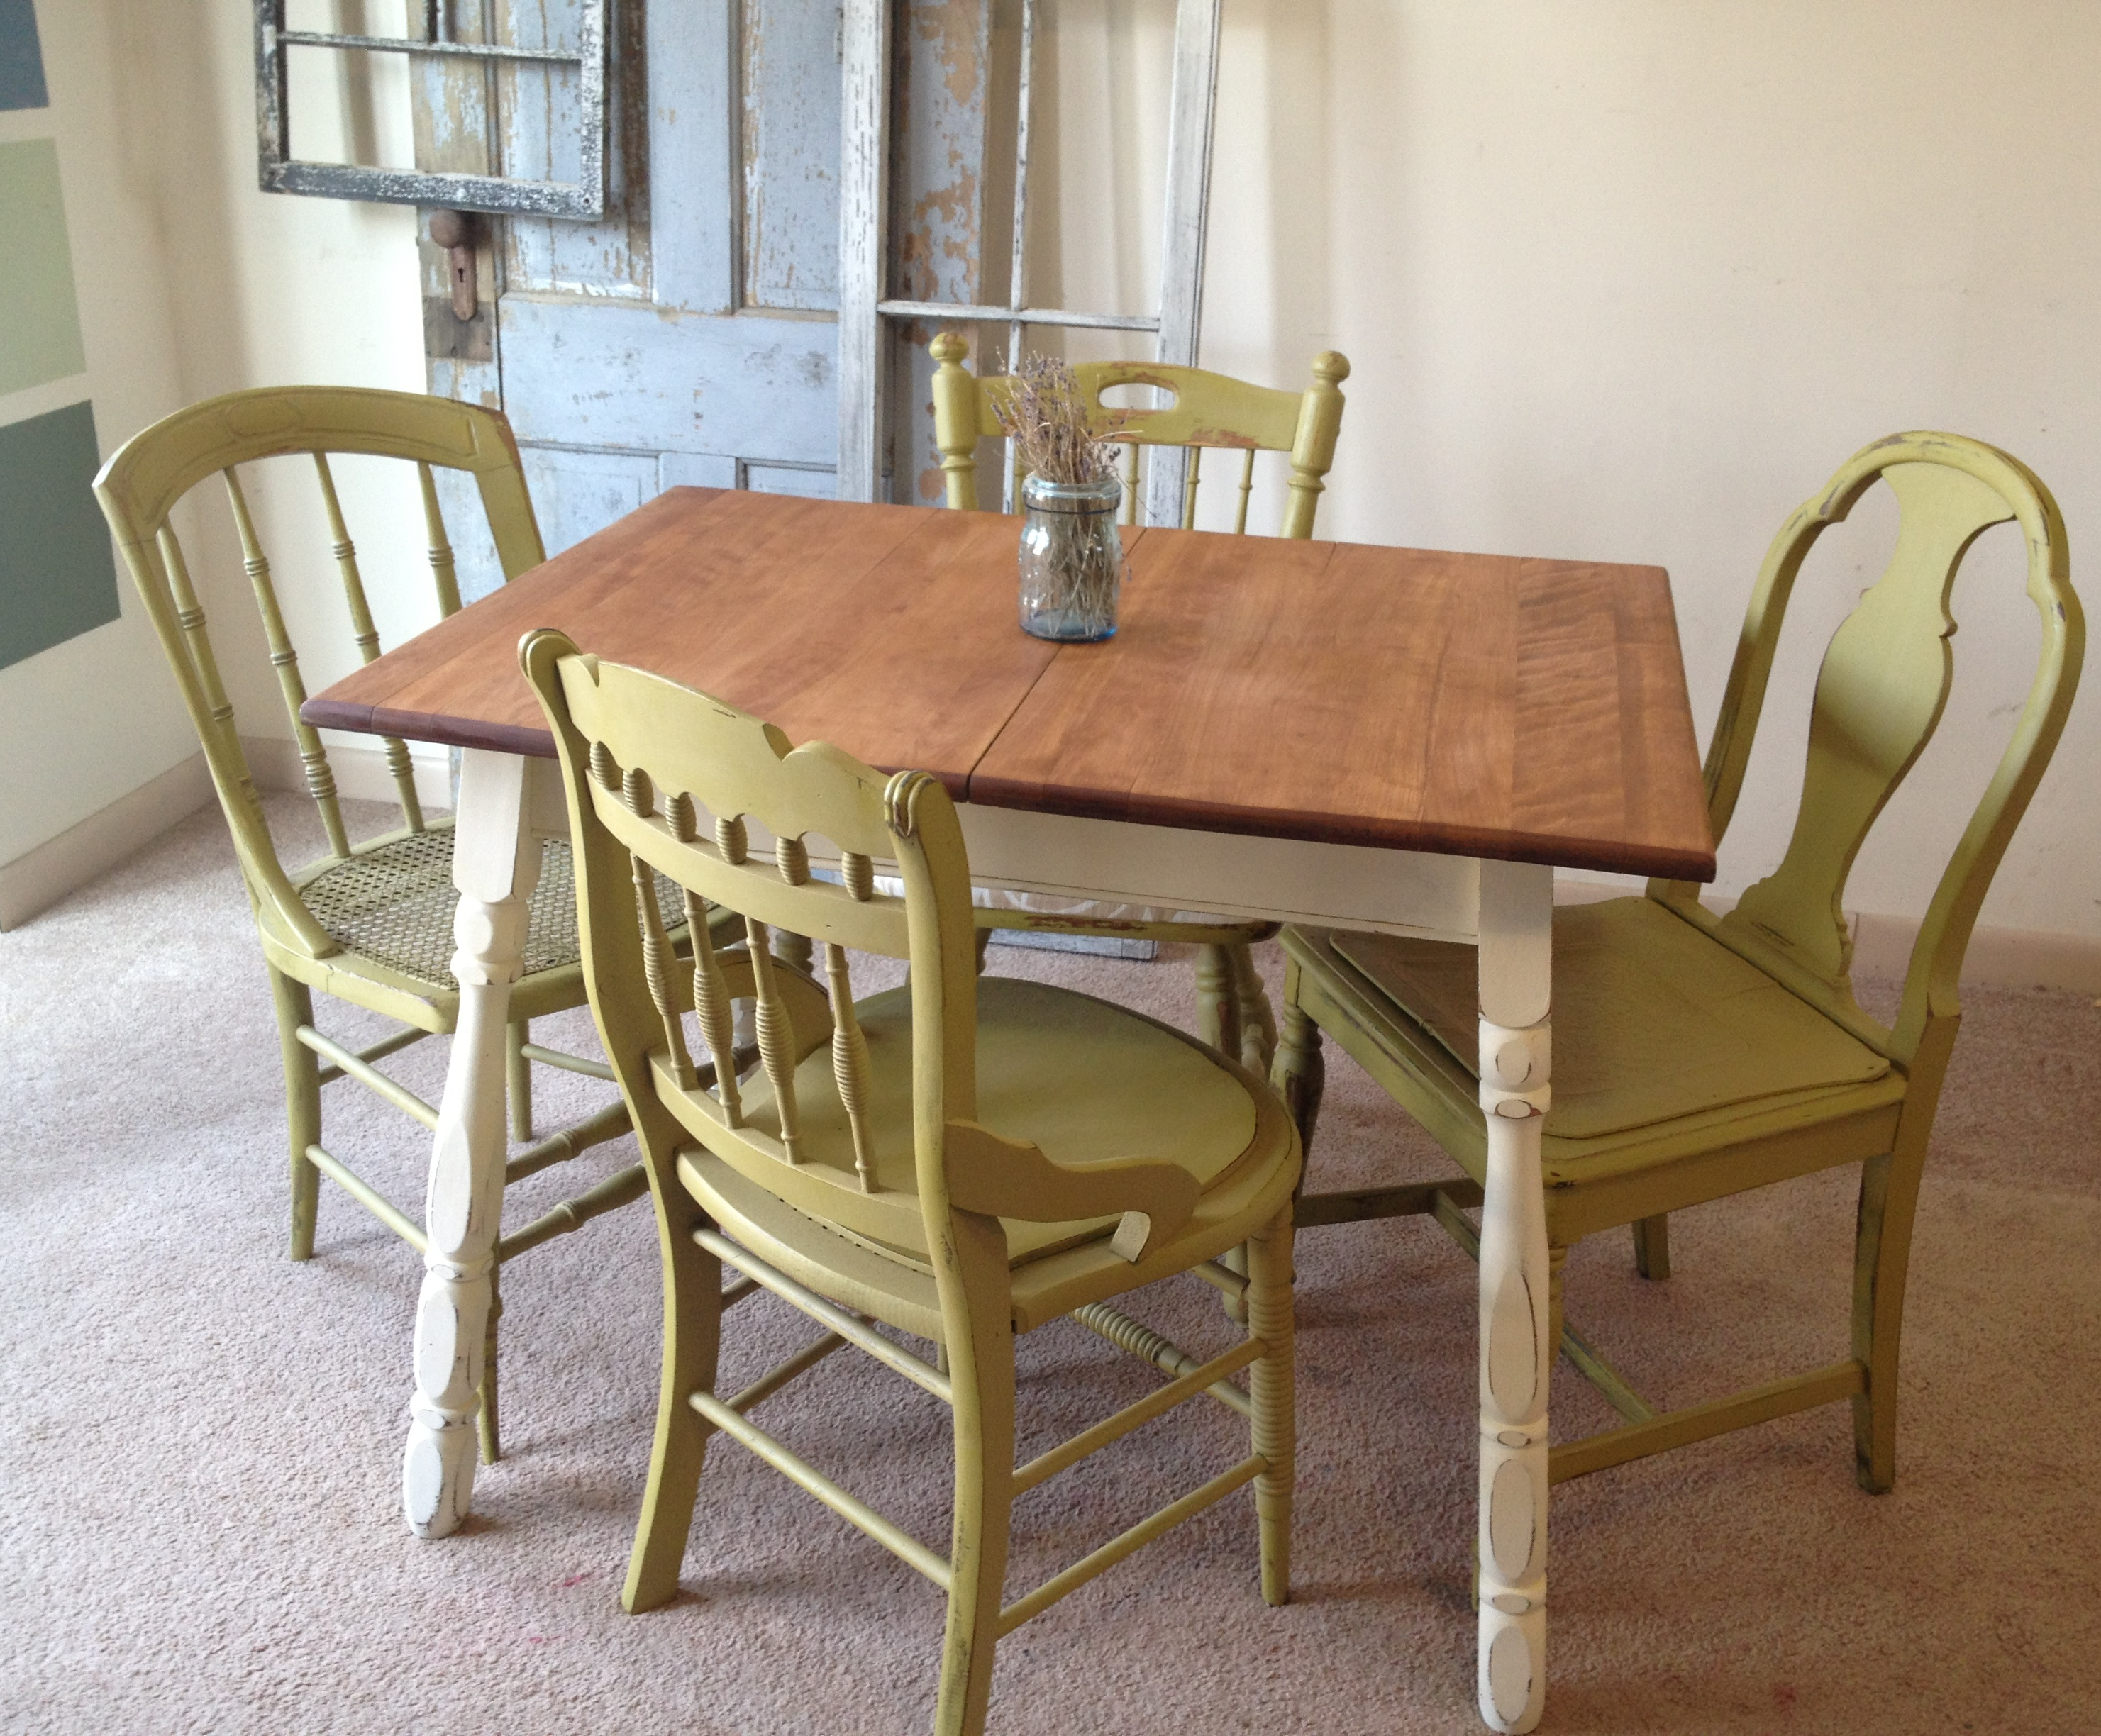 Wicker kitchen table and chairs photo - 1